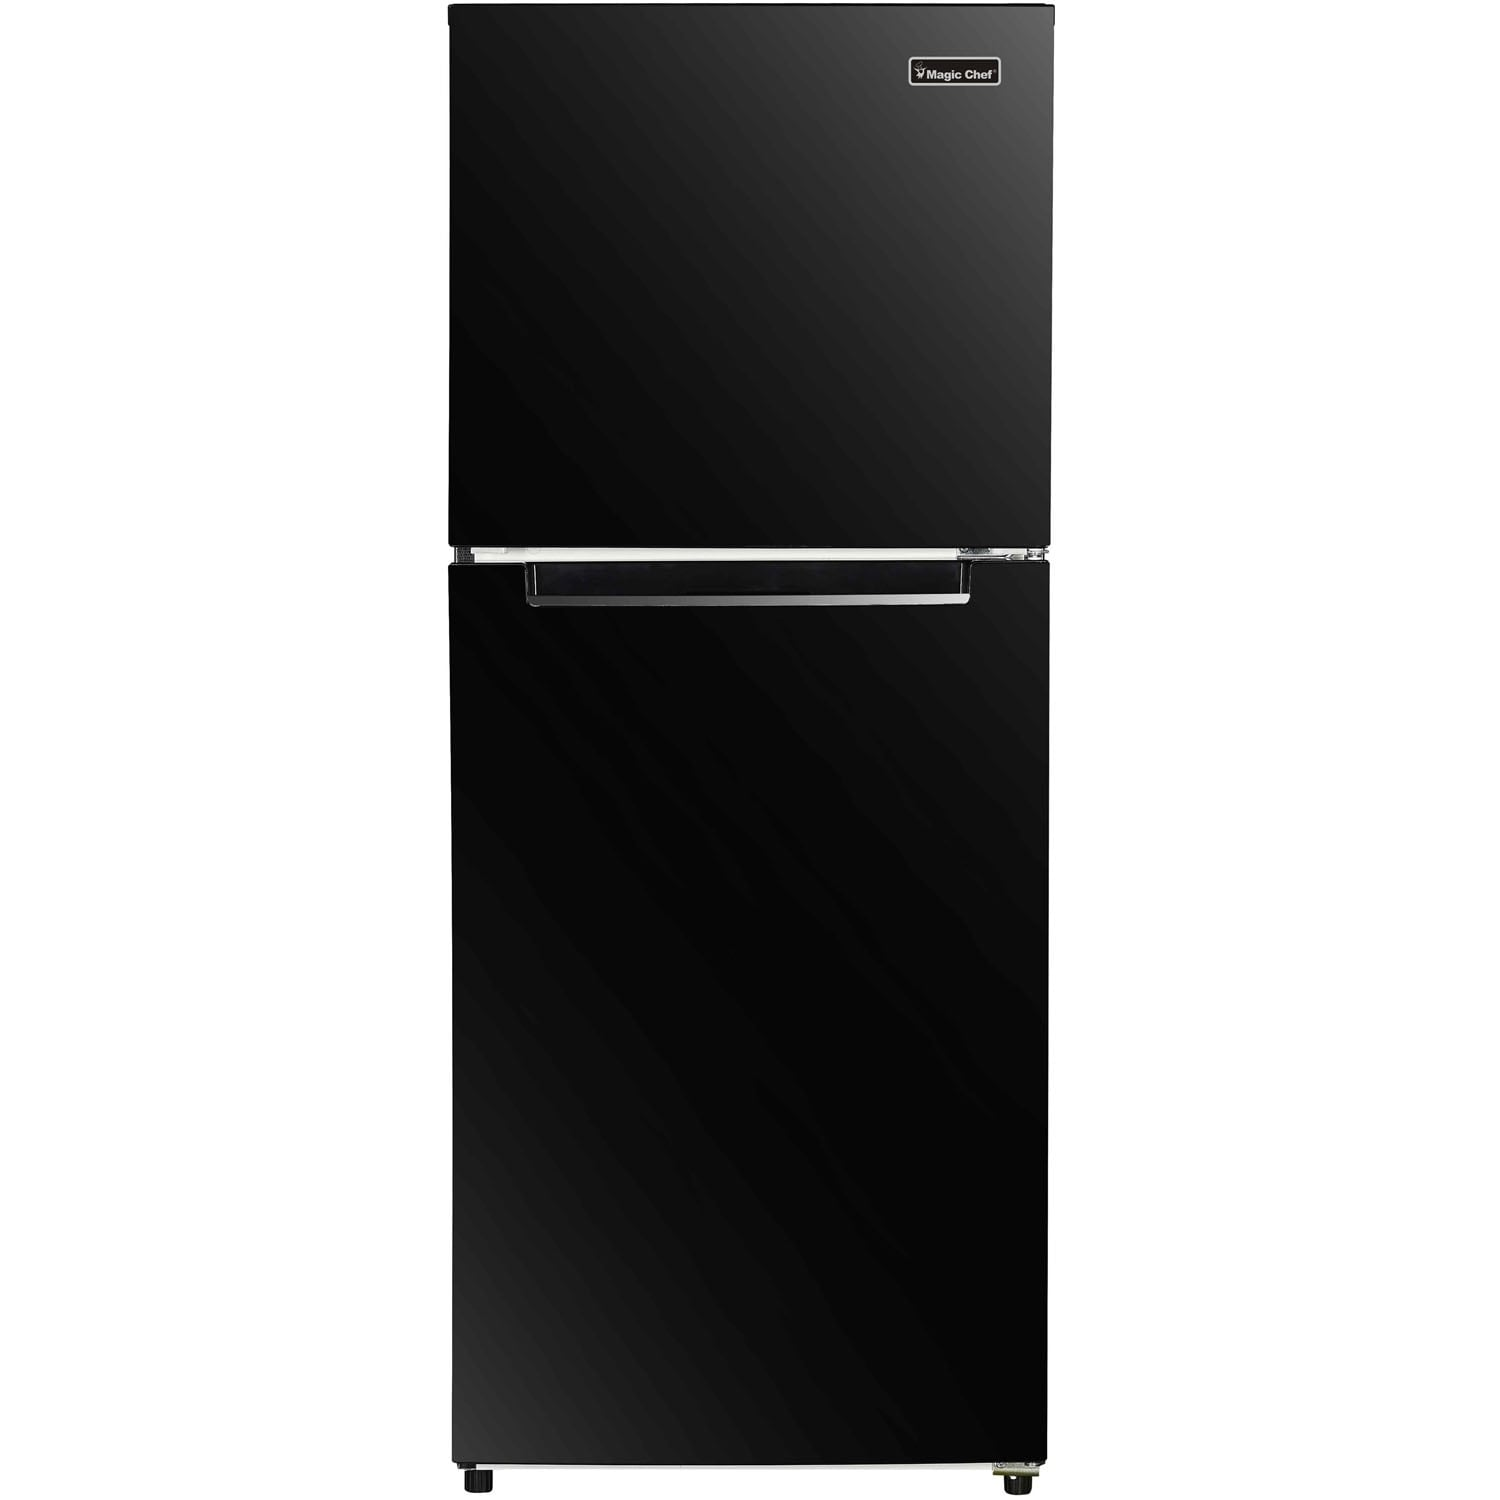 Magic Chef Energy Star 10 1 Cu Ft Refrigerator With Top